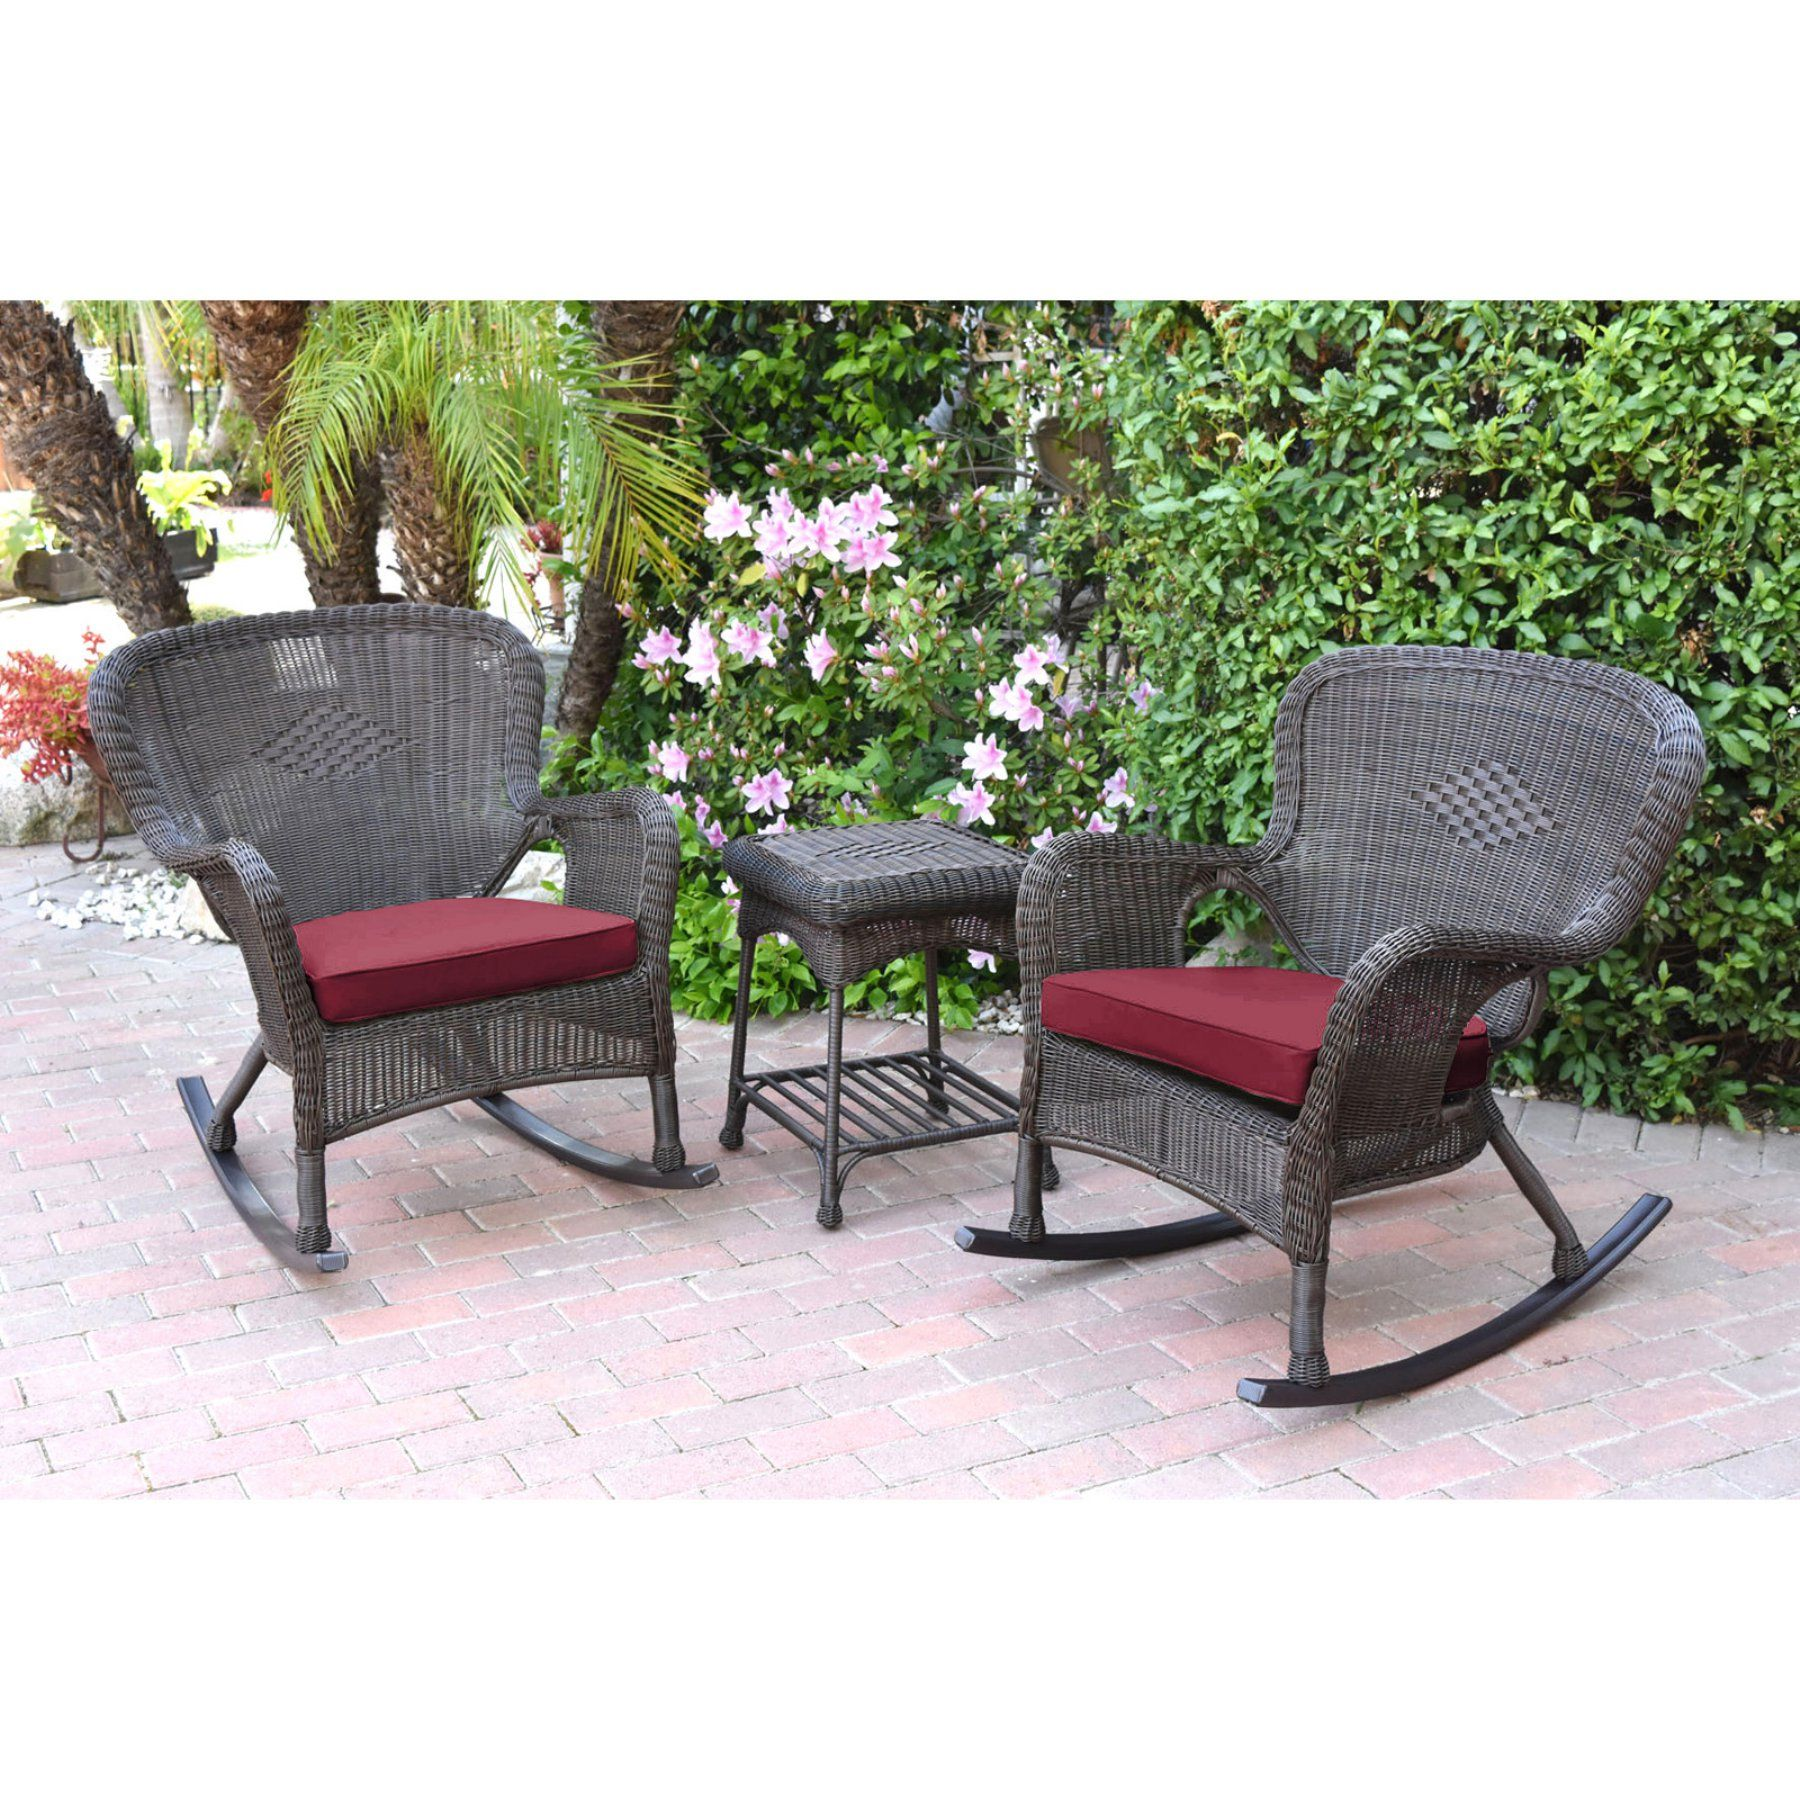 Outdoor Jeco Windsor Resin Wicker 3 Piece Patio Rocker Conversation